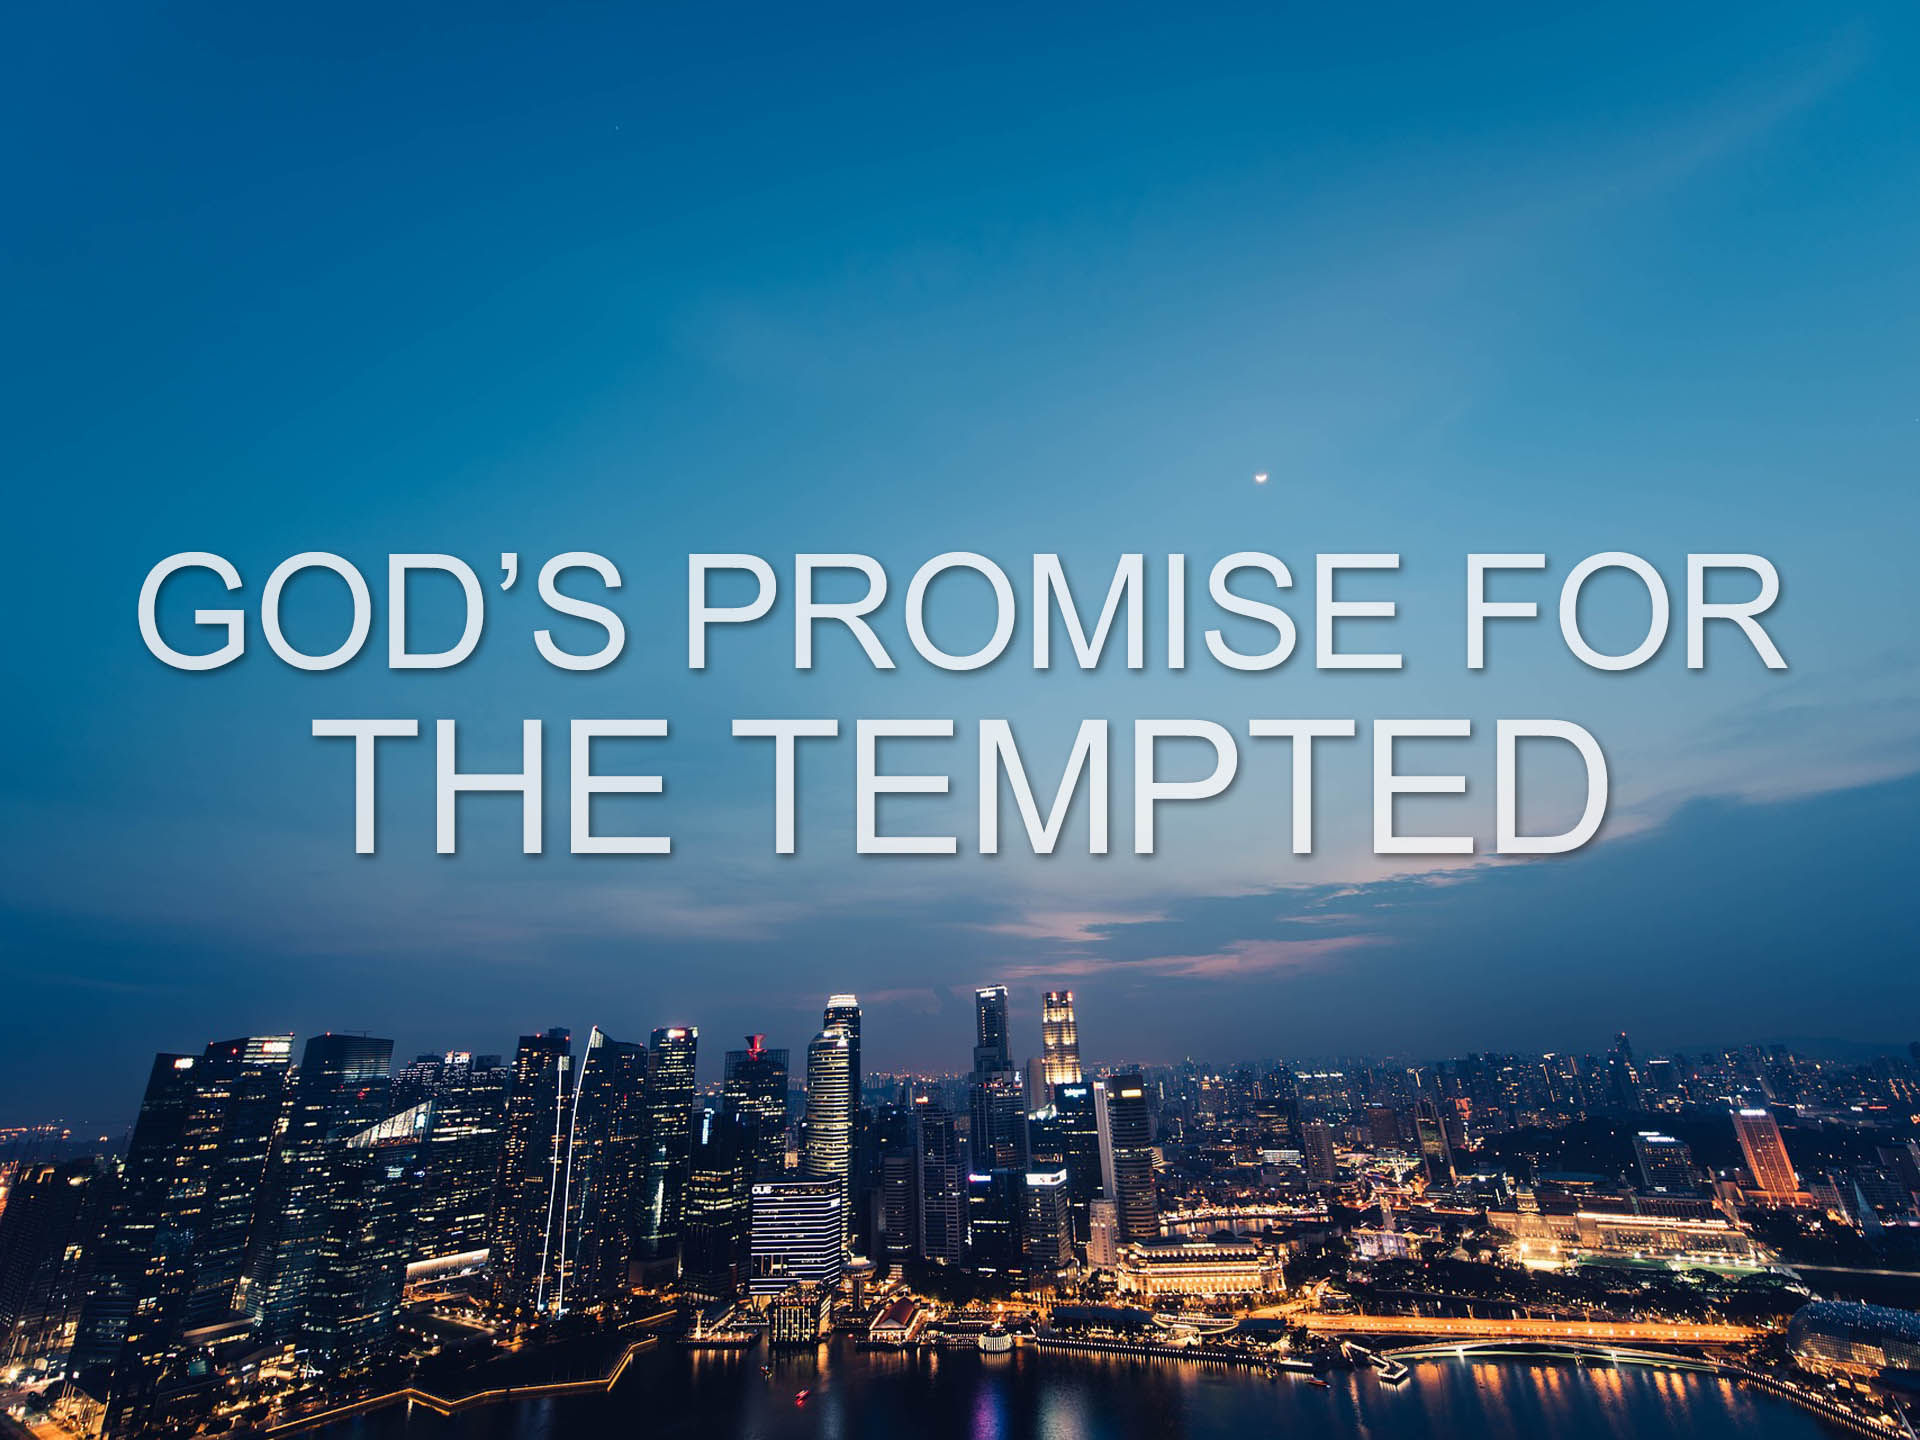 God's Promise for the Tempted